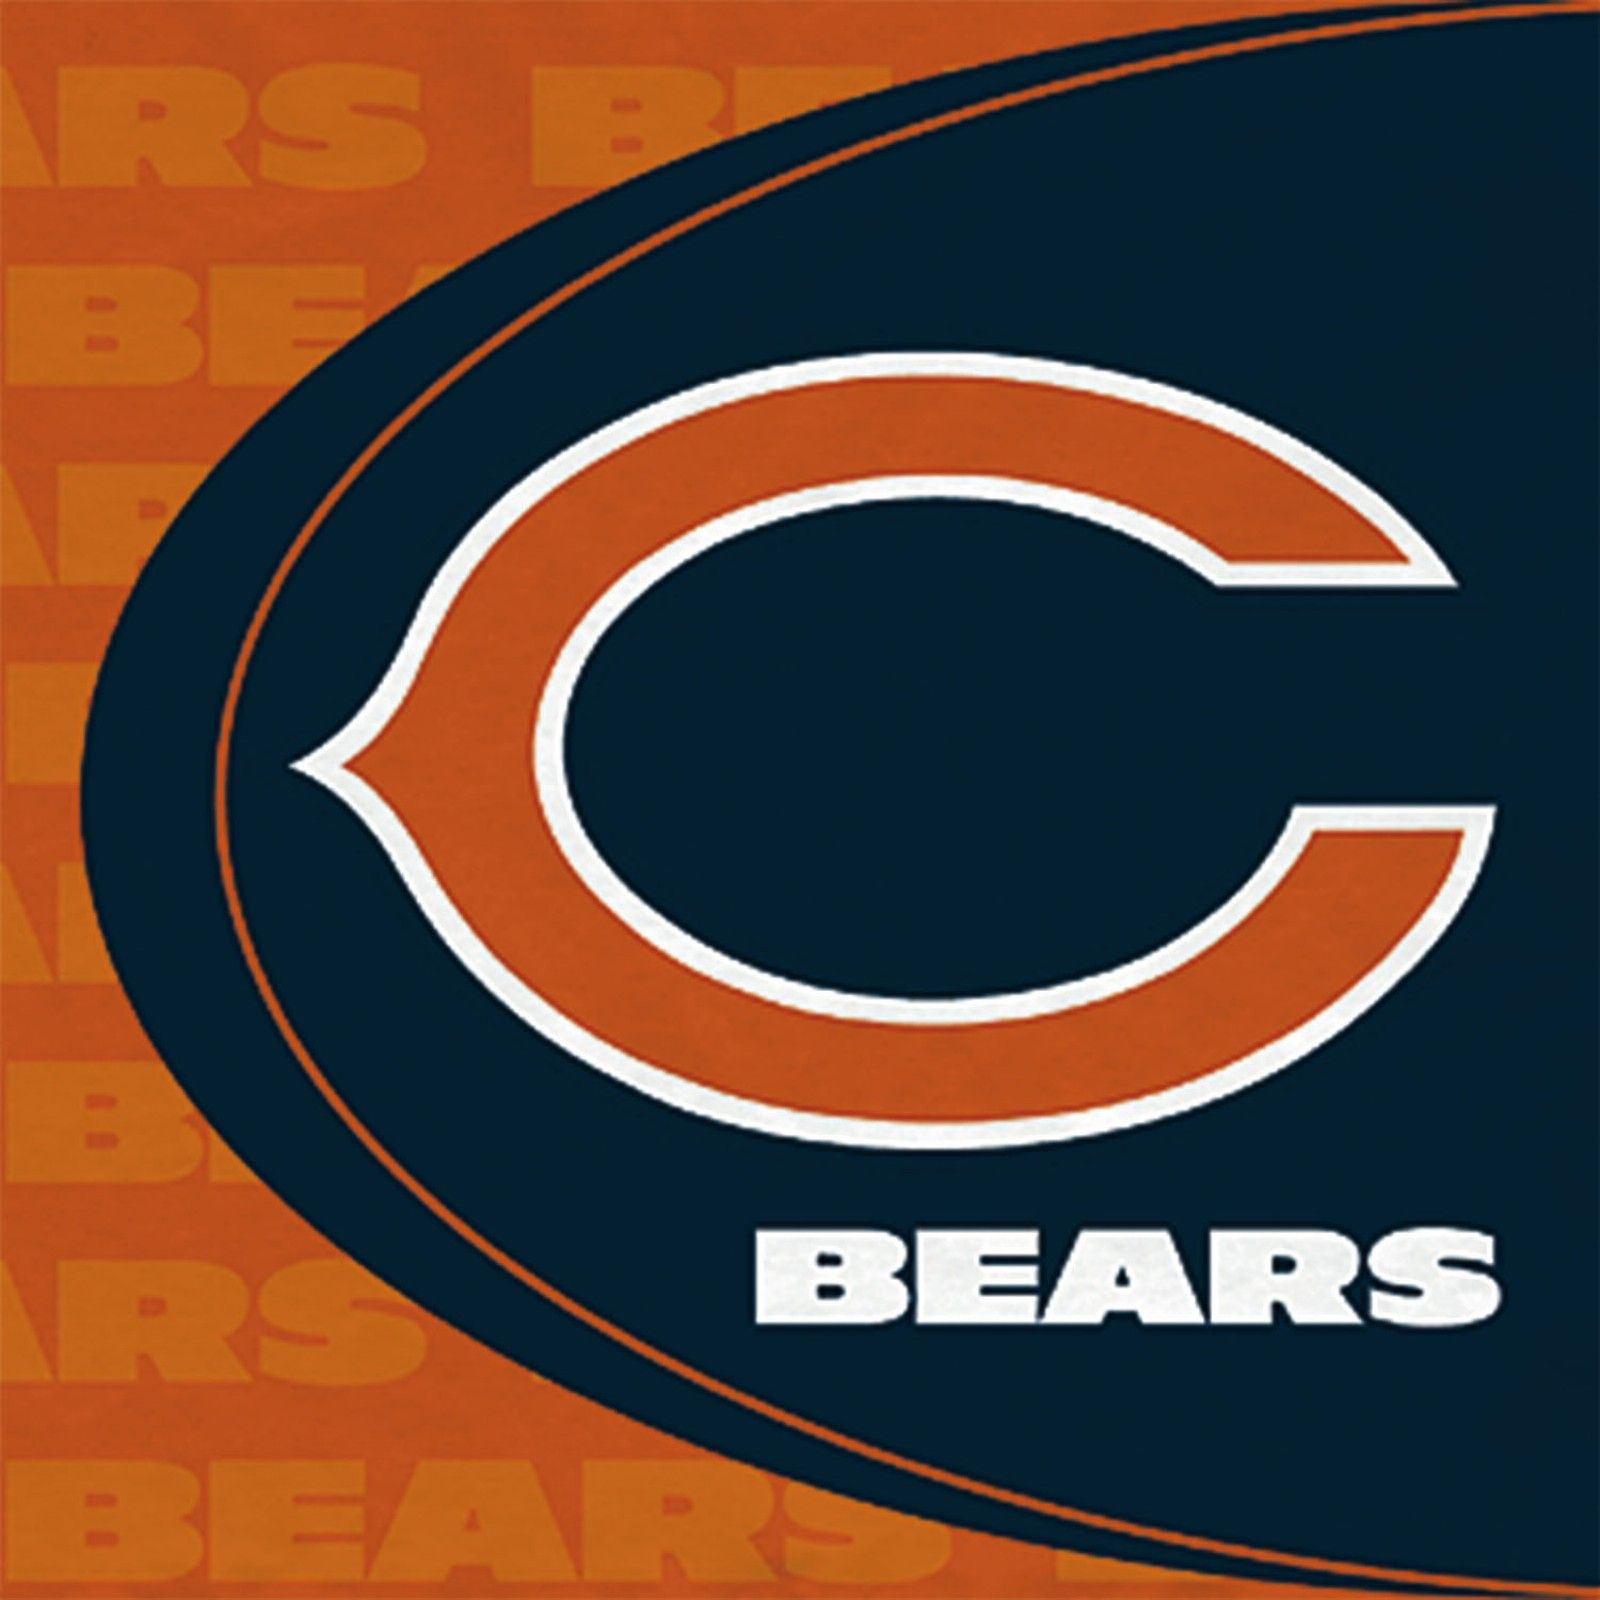 Chicago Bears 2.jpg phone wallpaper by chucksta